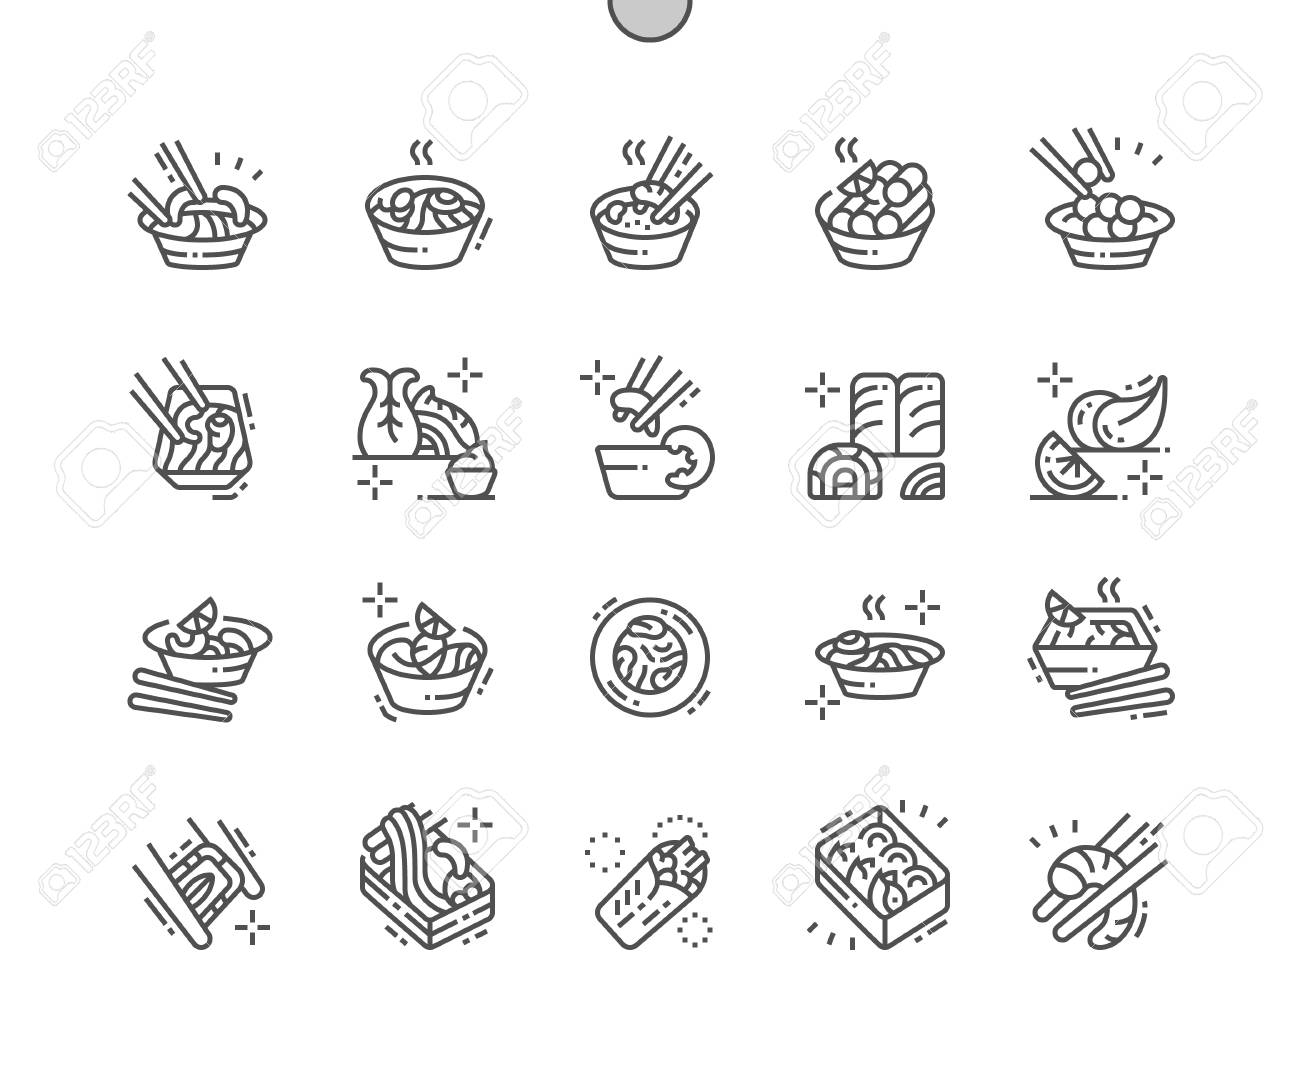 Asian food Well-crafted Pixel Perfect Vector Thin Line Icons 30 2x Grid for Web Graphics and Apps. Simple Minimal Pictogram - 109834964